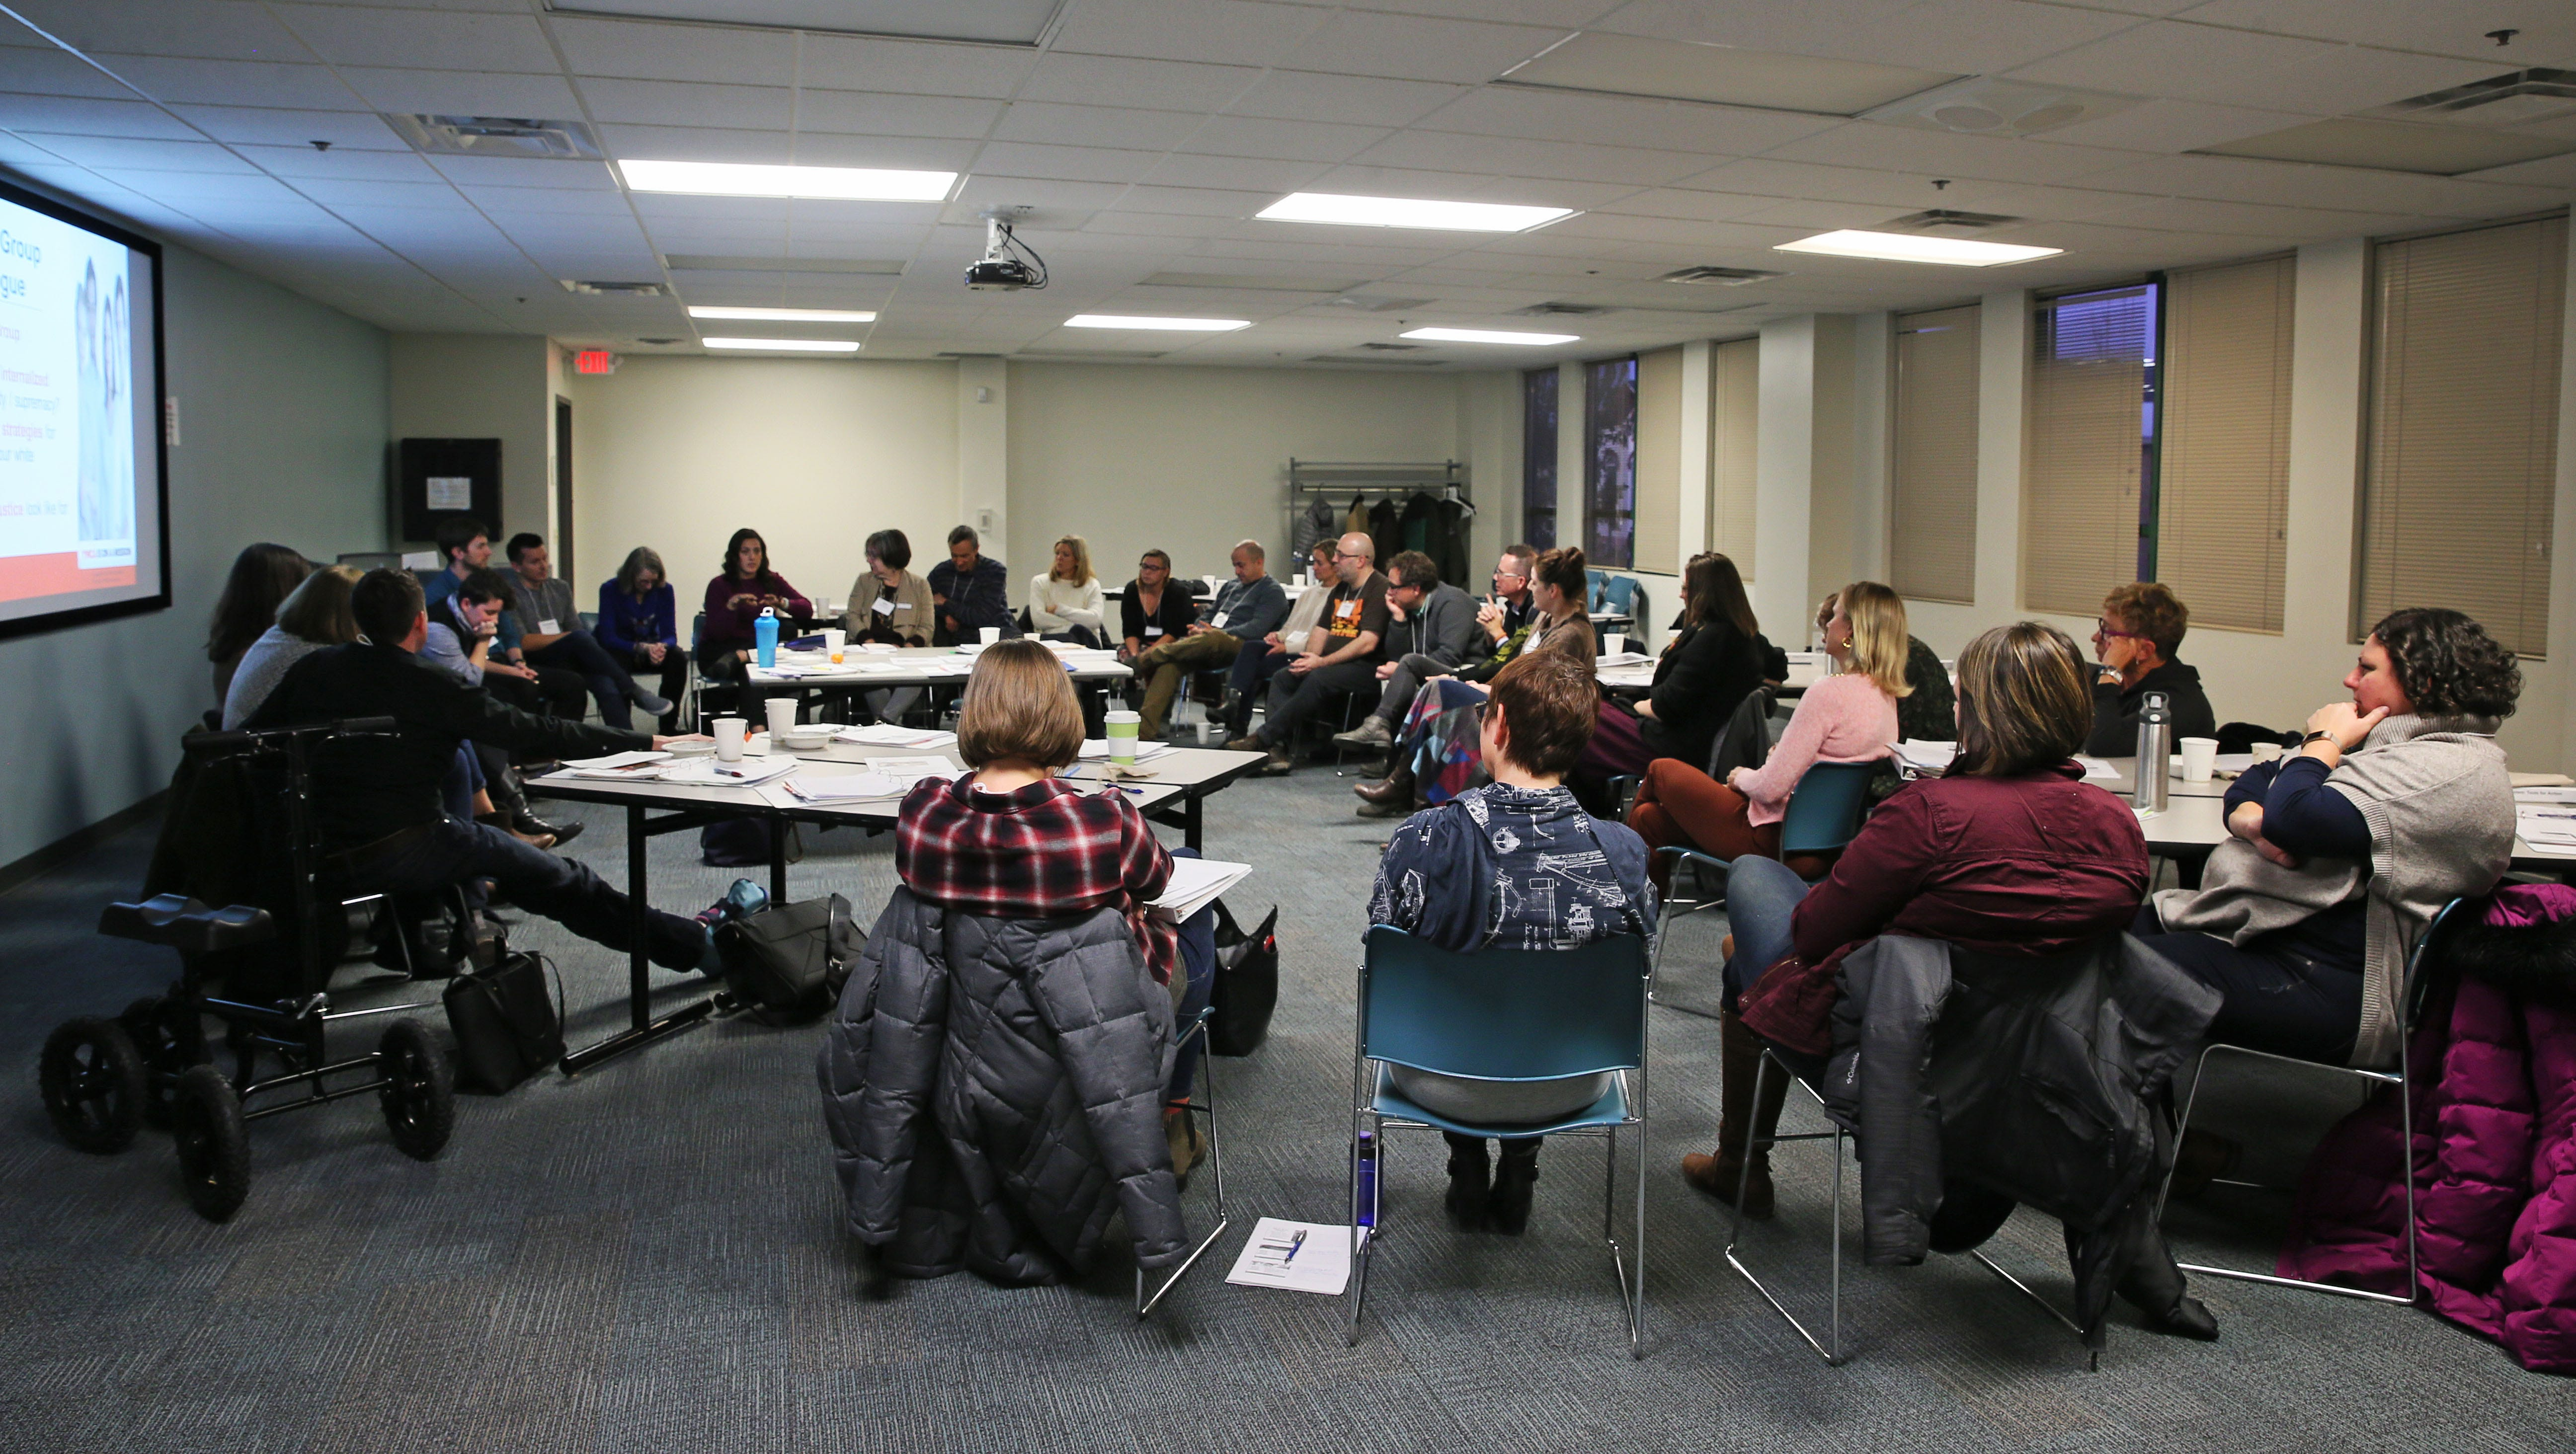 People participating in Unlearning Racism were divided into two groups, white participants shown here and people of color, for an exercise to talk about shared experiences.